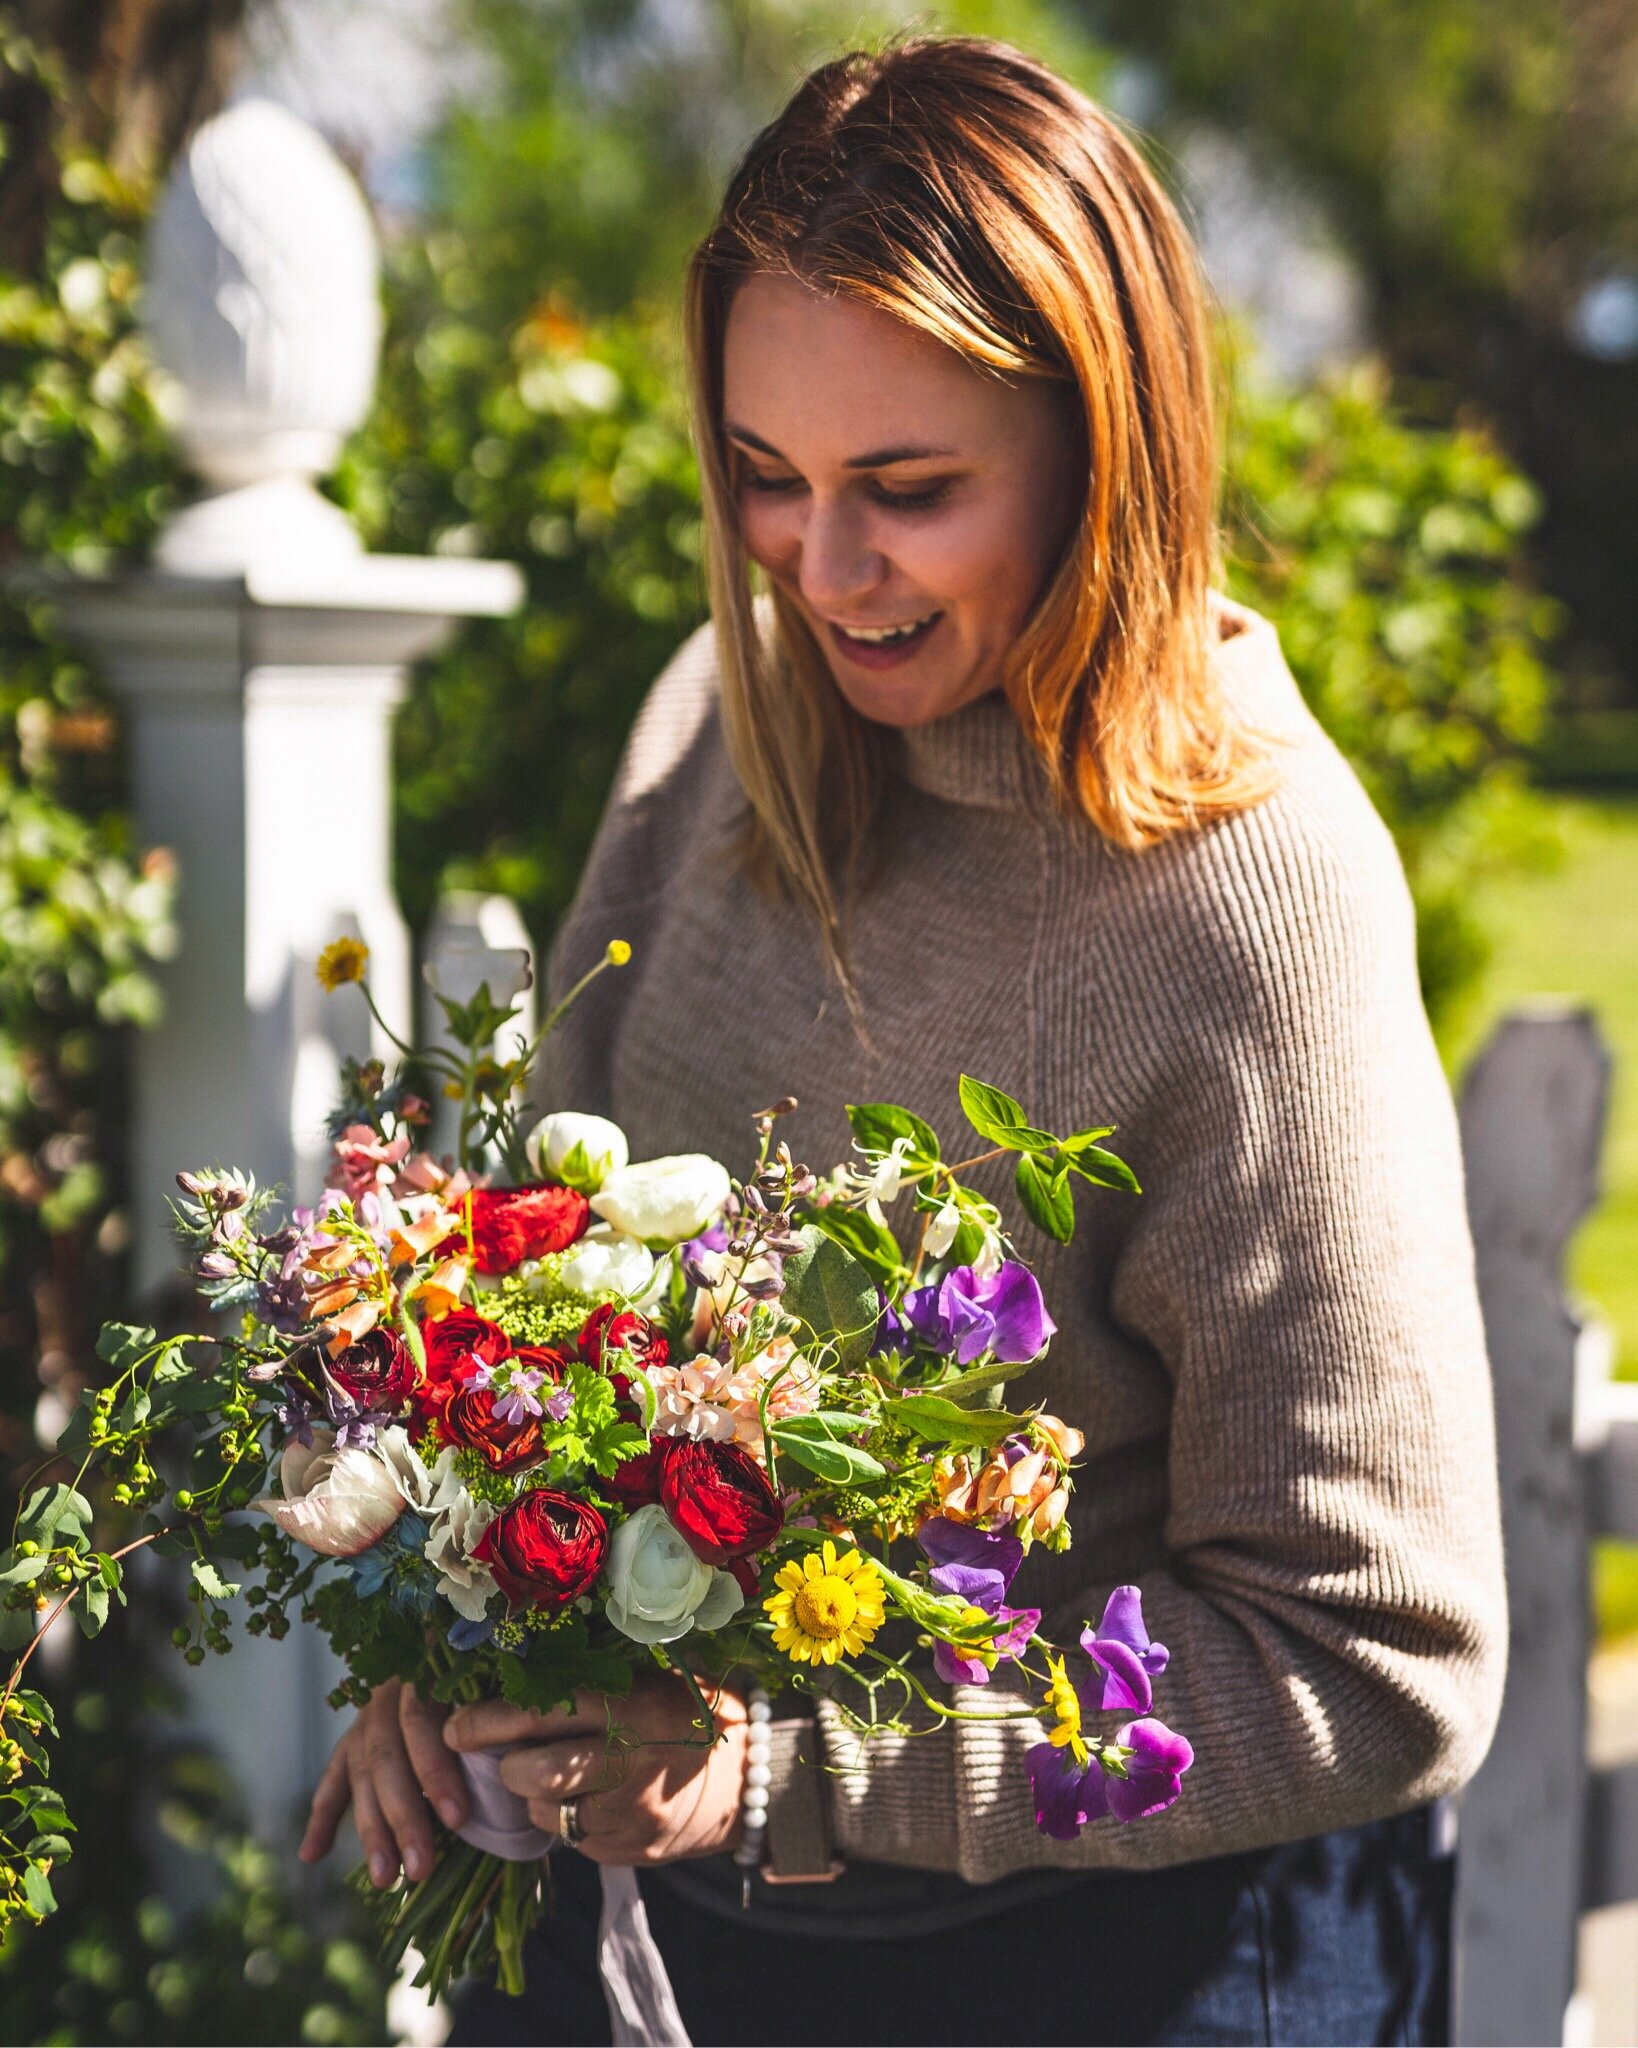 We are looking forward to growing , harvesting and handing wedding blooms to you soon! - Thank you for your consideration of our local flowers for your incredibly special day! - Jessica